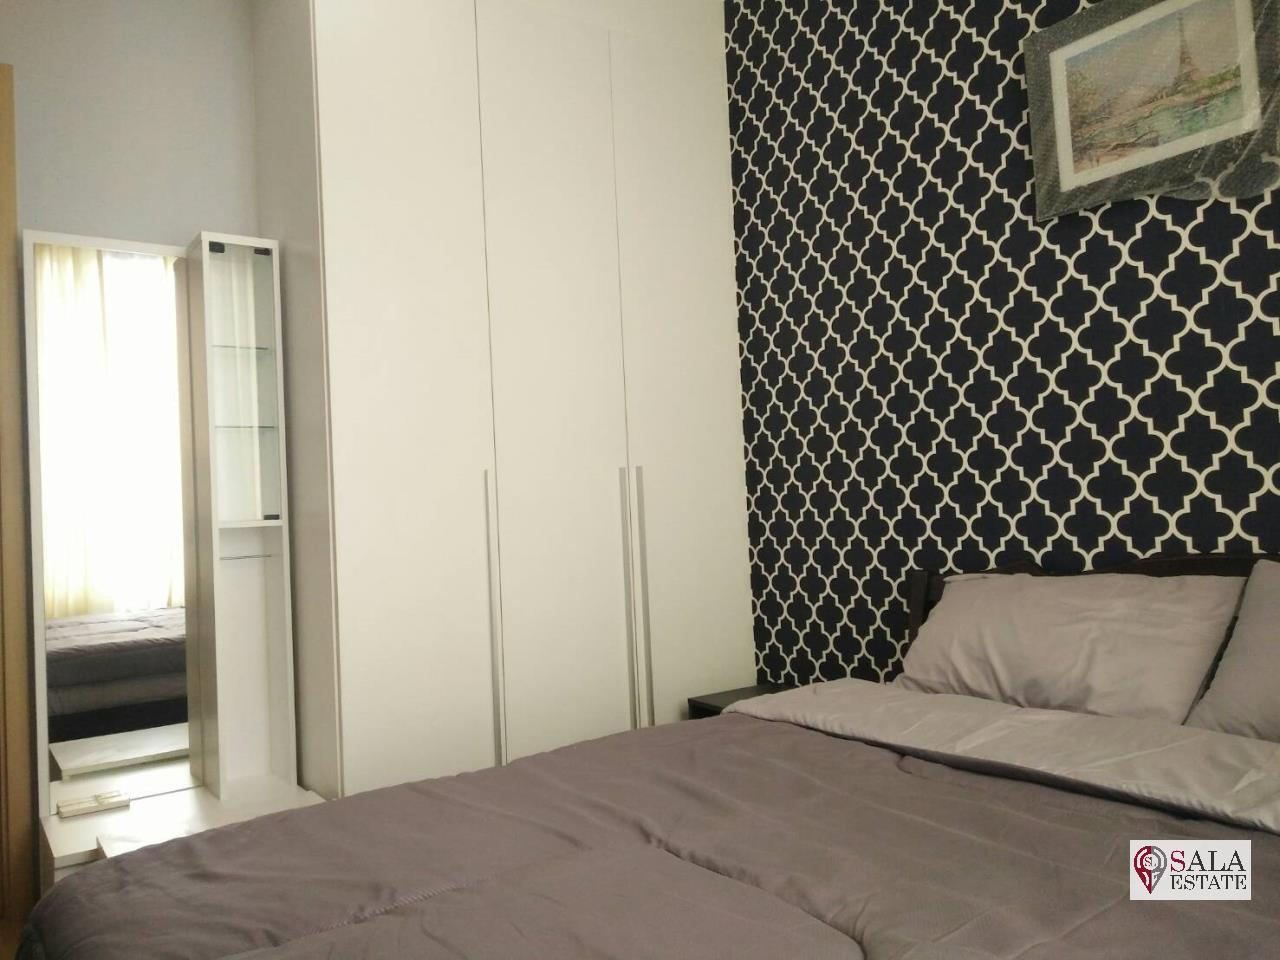 SALA ESTATE Agency's ( SELL WITH TENANT) 39 BY SANSIRI - BTS PROMPONG, 2 BEDROOMS 2 BATHROOMS, FULLY FURNISHED 3